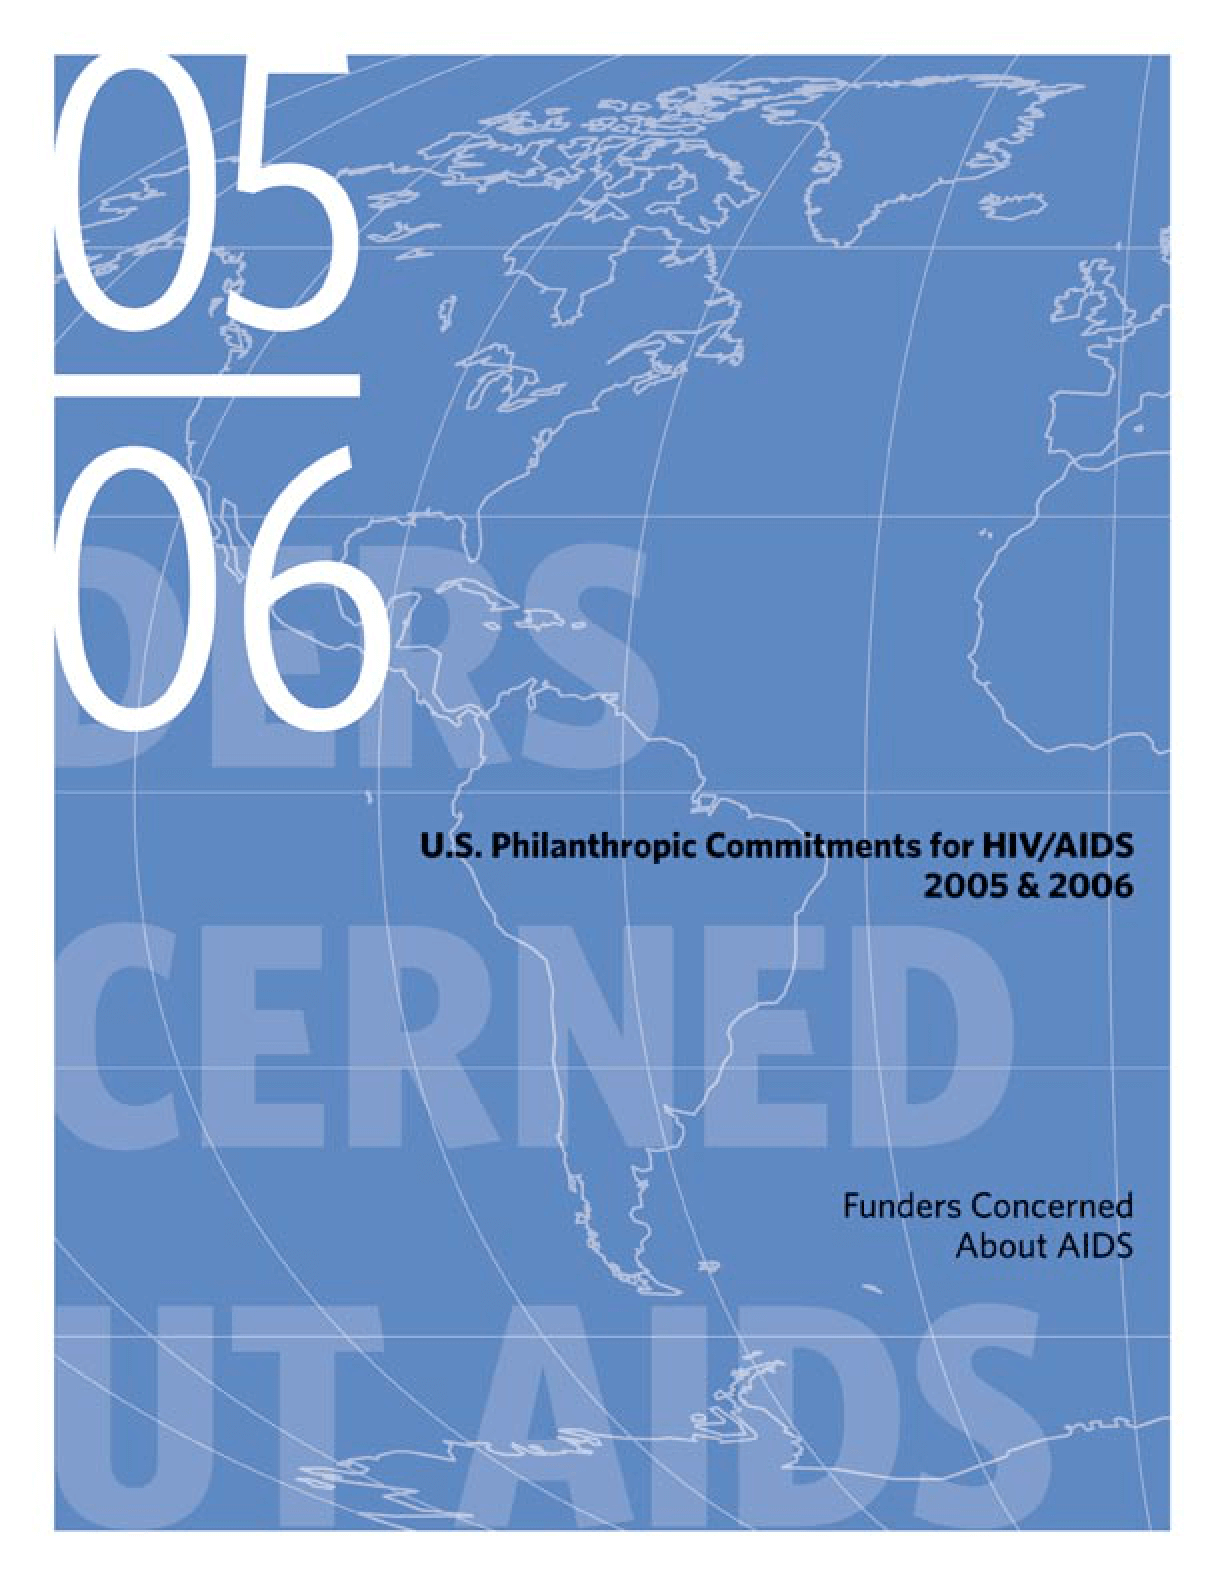 U.S. Philanthropic Commitments For HIV/AIDS 2005 and 2006